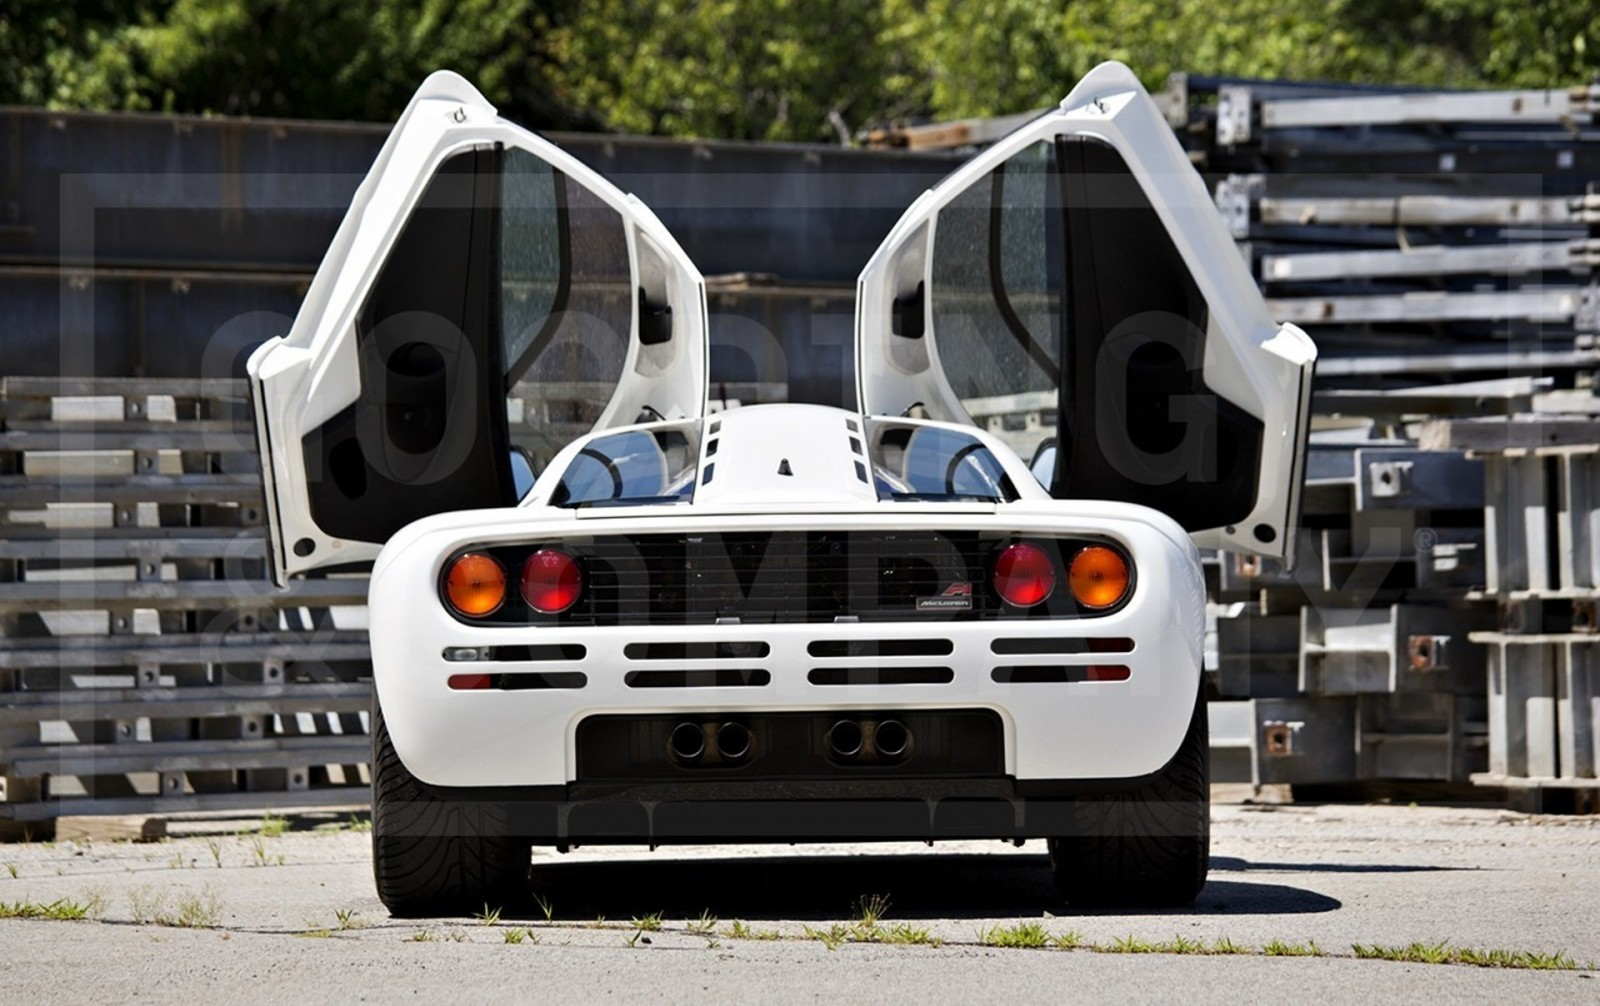 Gooding Pebble Beach 2014 Preview - 1995 McLaren F1 - The Only White F1 Ever Made = $12Mil+ 10